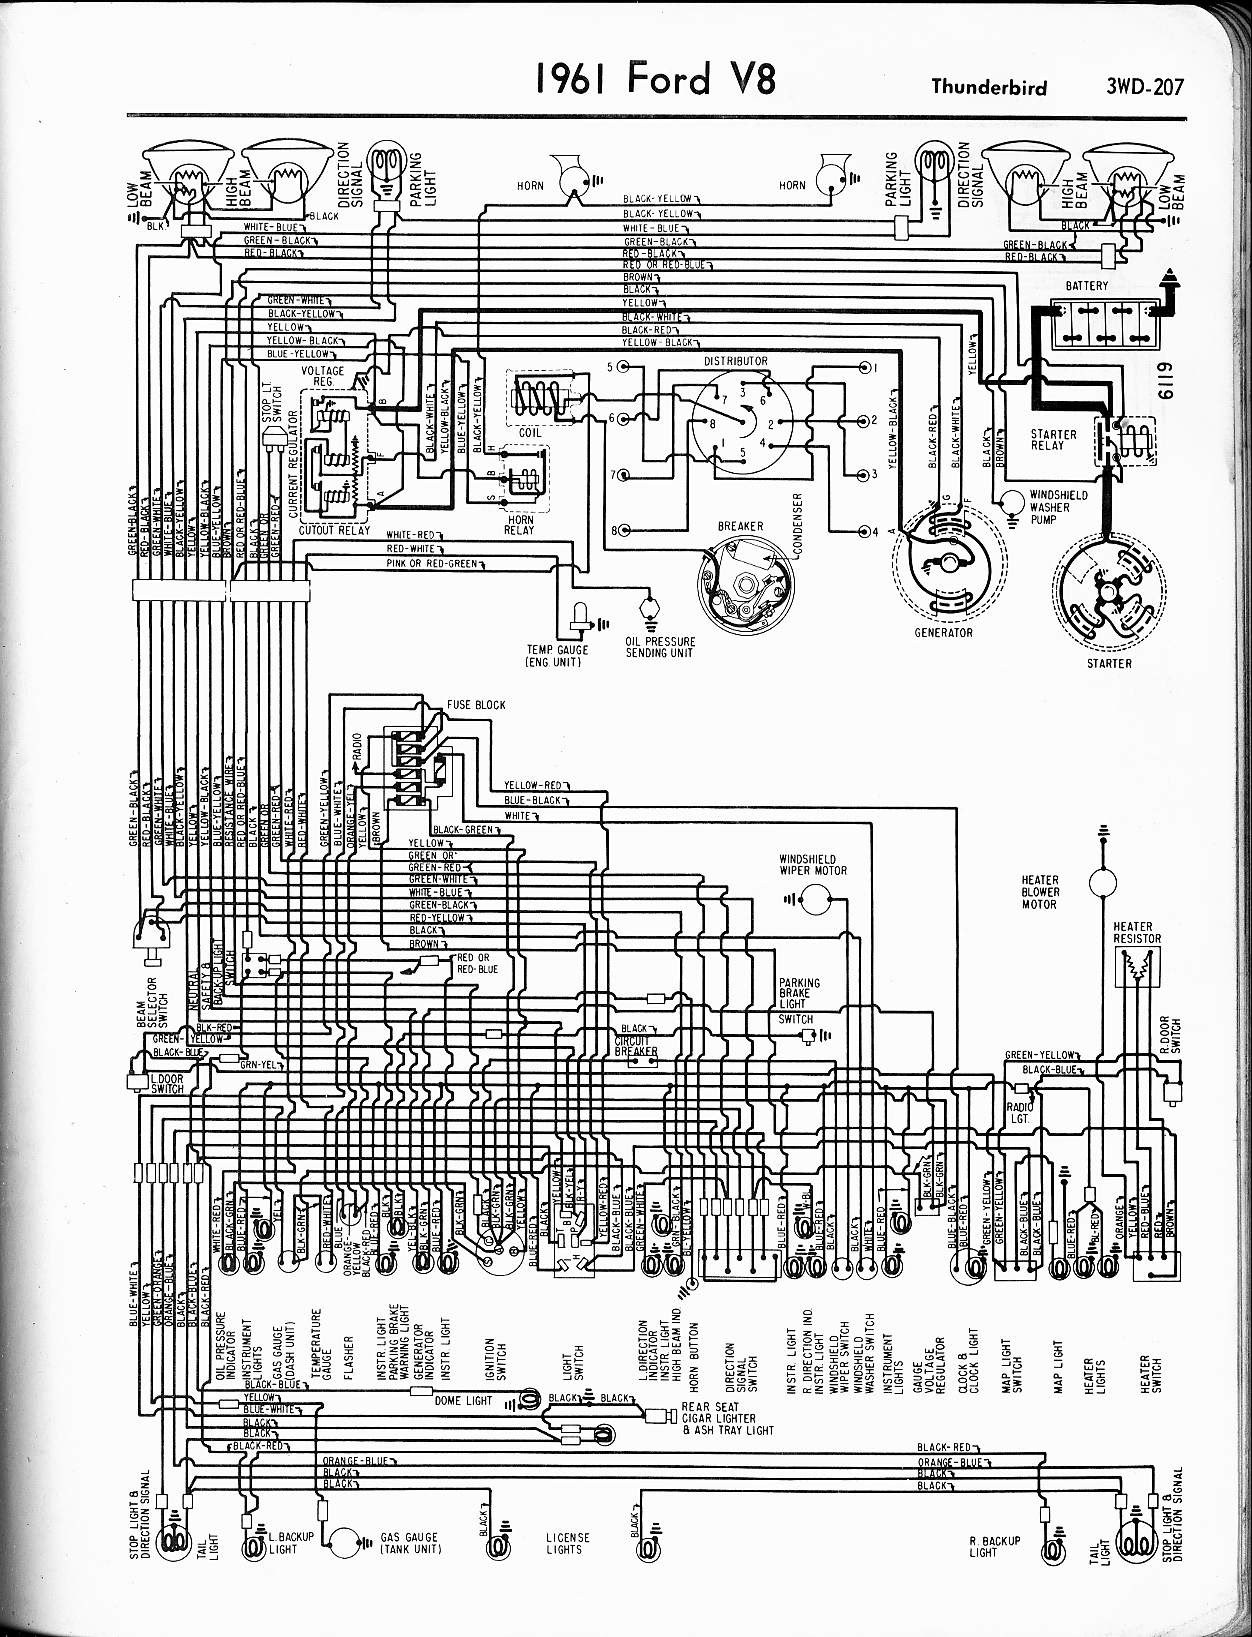 54 Ford Customline Wiring Diagram Wiring Diagram Server A Server A Lastanzadeltempo It